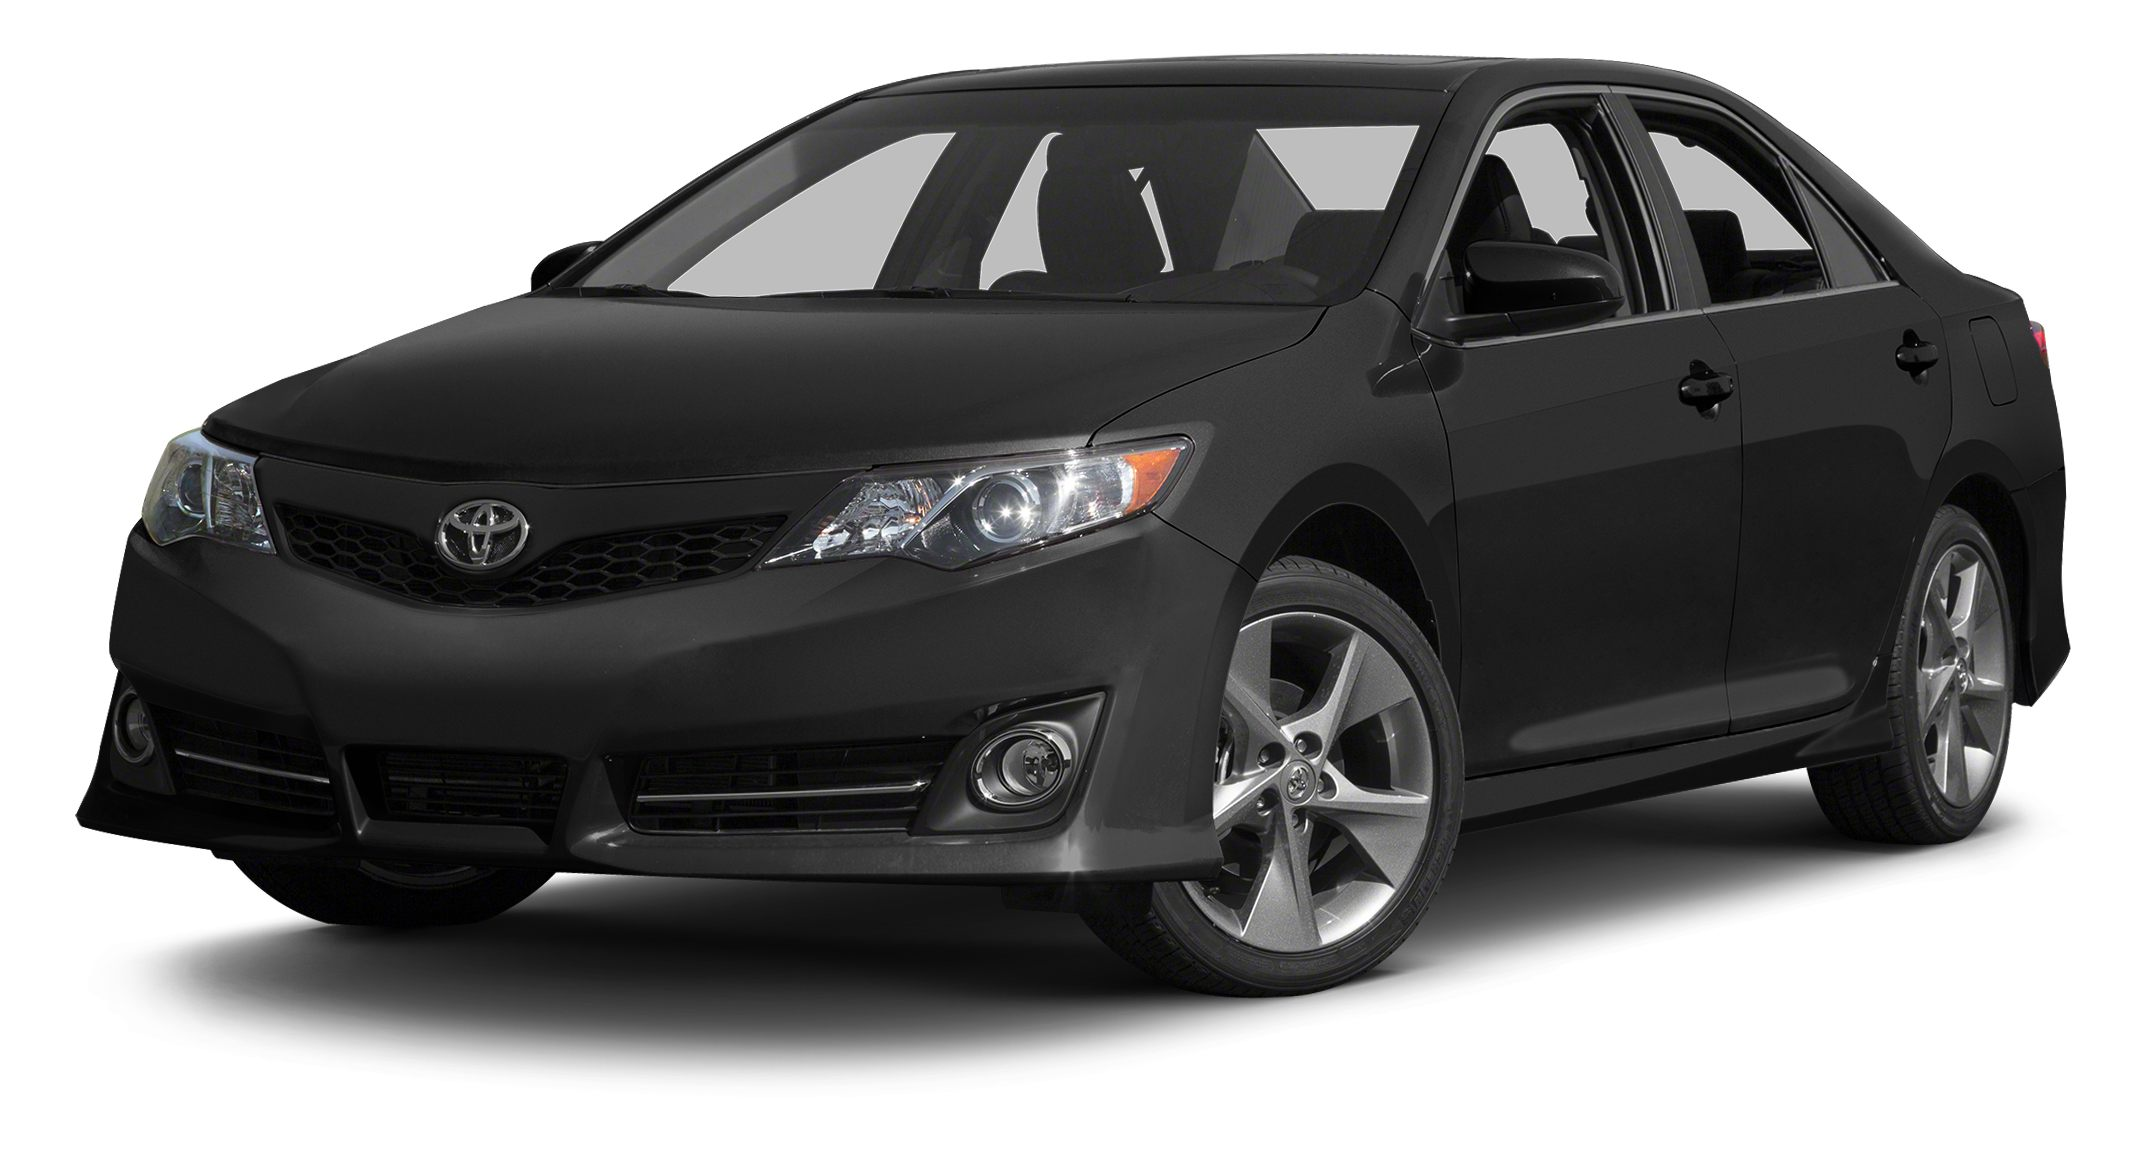 2013 Toyota Camry SE New Price CARFAX One-Owner Attitude Black Metallic 2013 Toyota Camry SE FWD